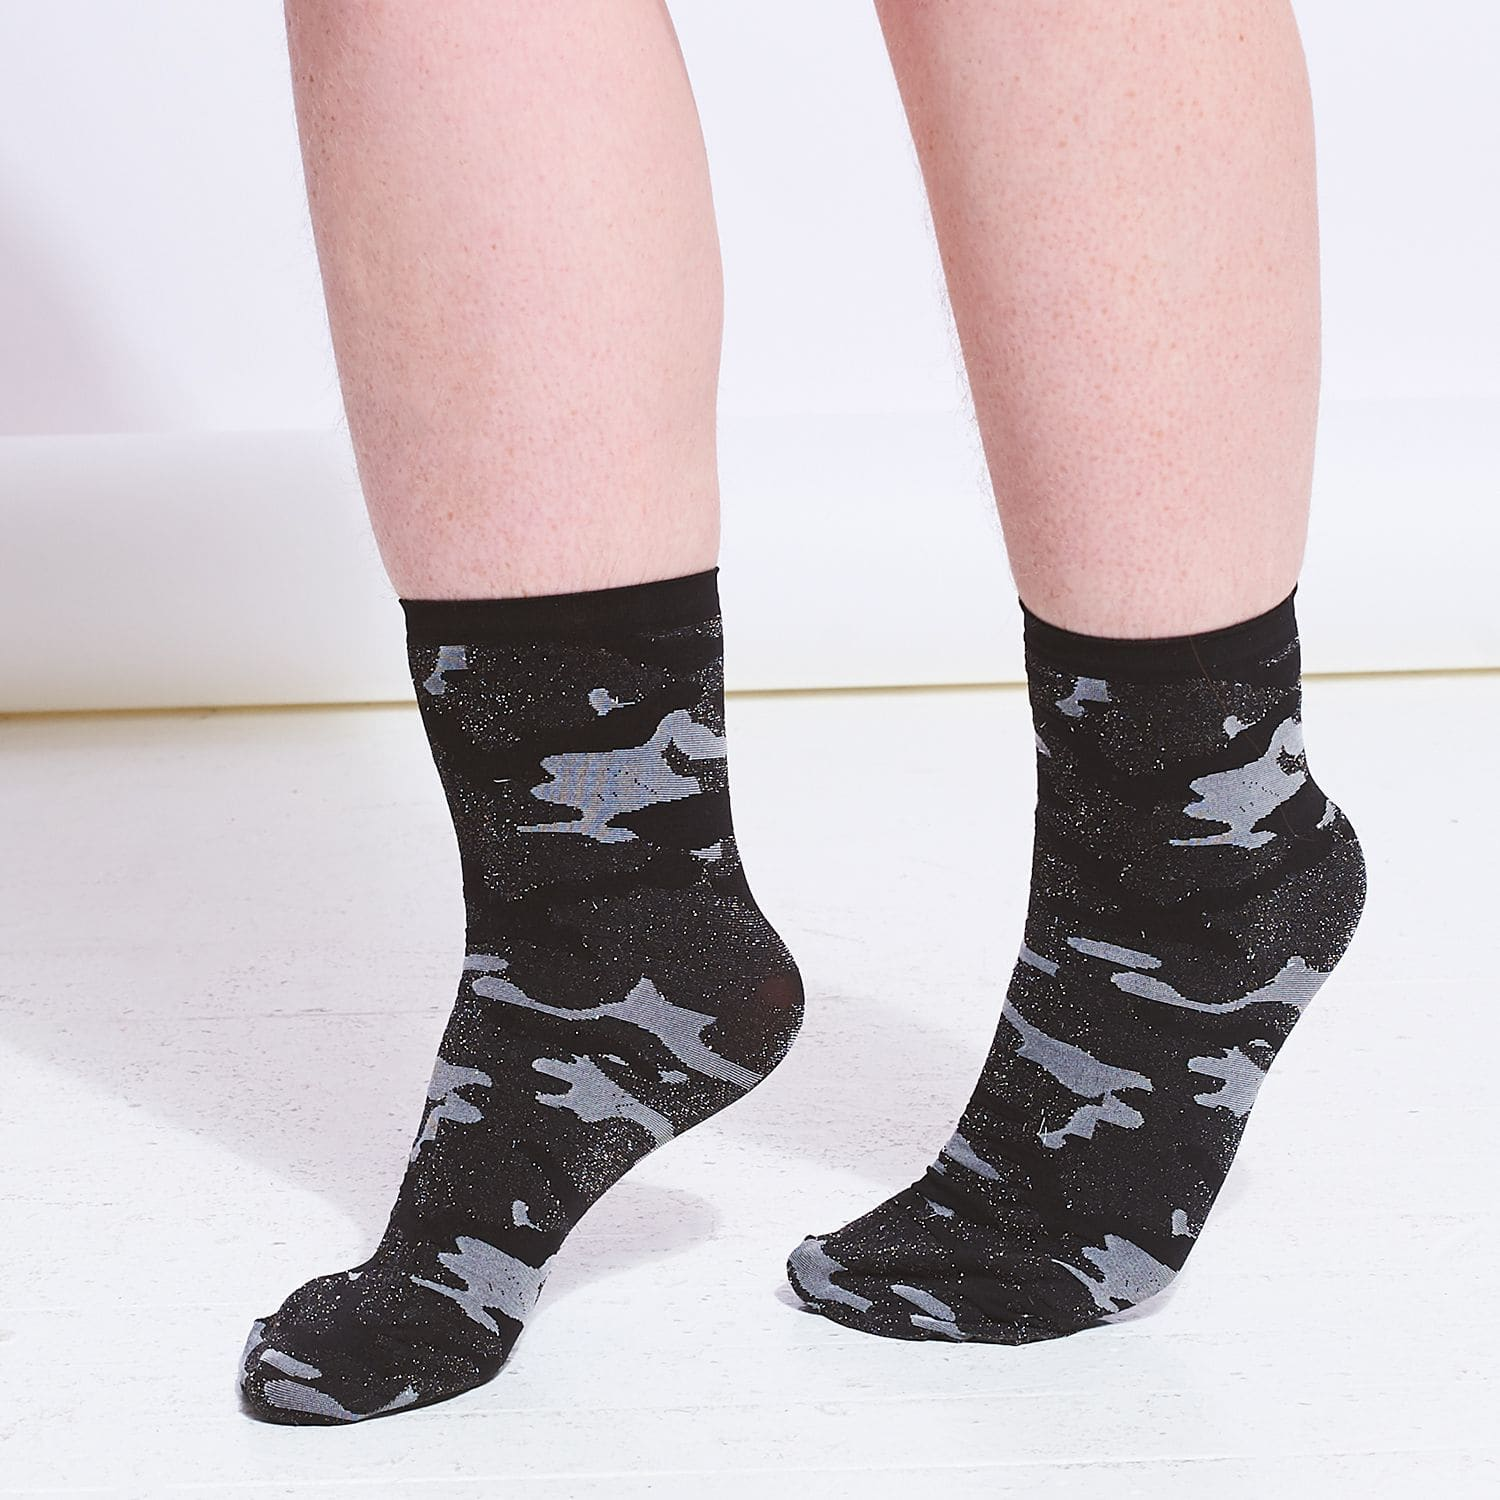 Camo Anklet Socks Ankle Socks, Anklet Length, Boot Sock,